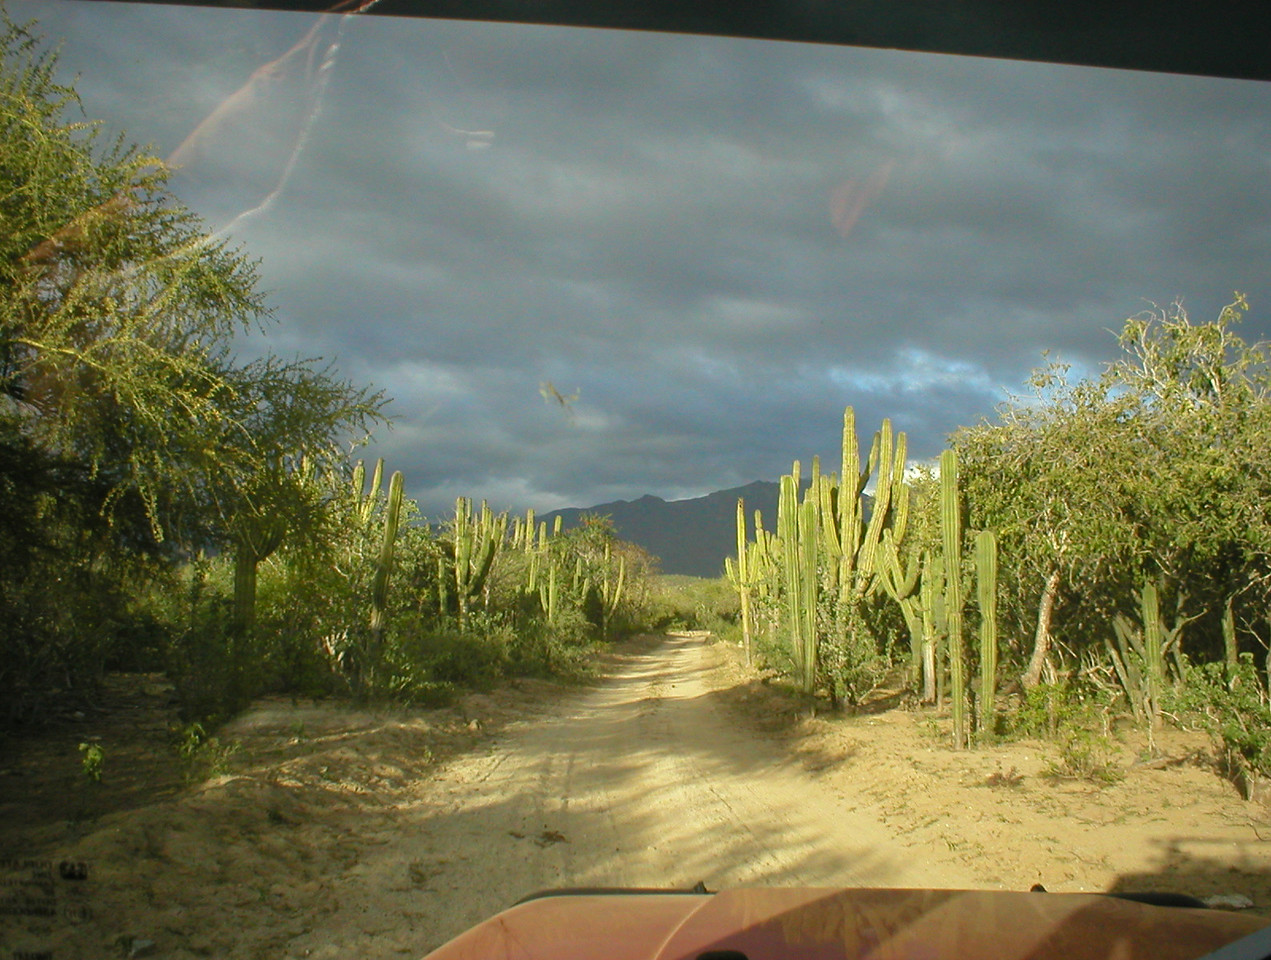 Going through the eco zones, cactus and trees.